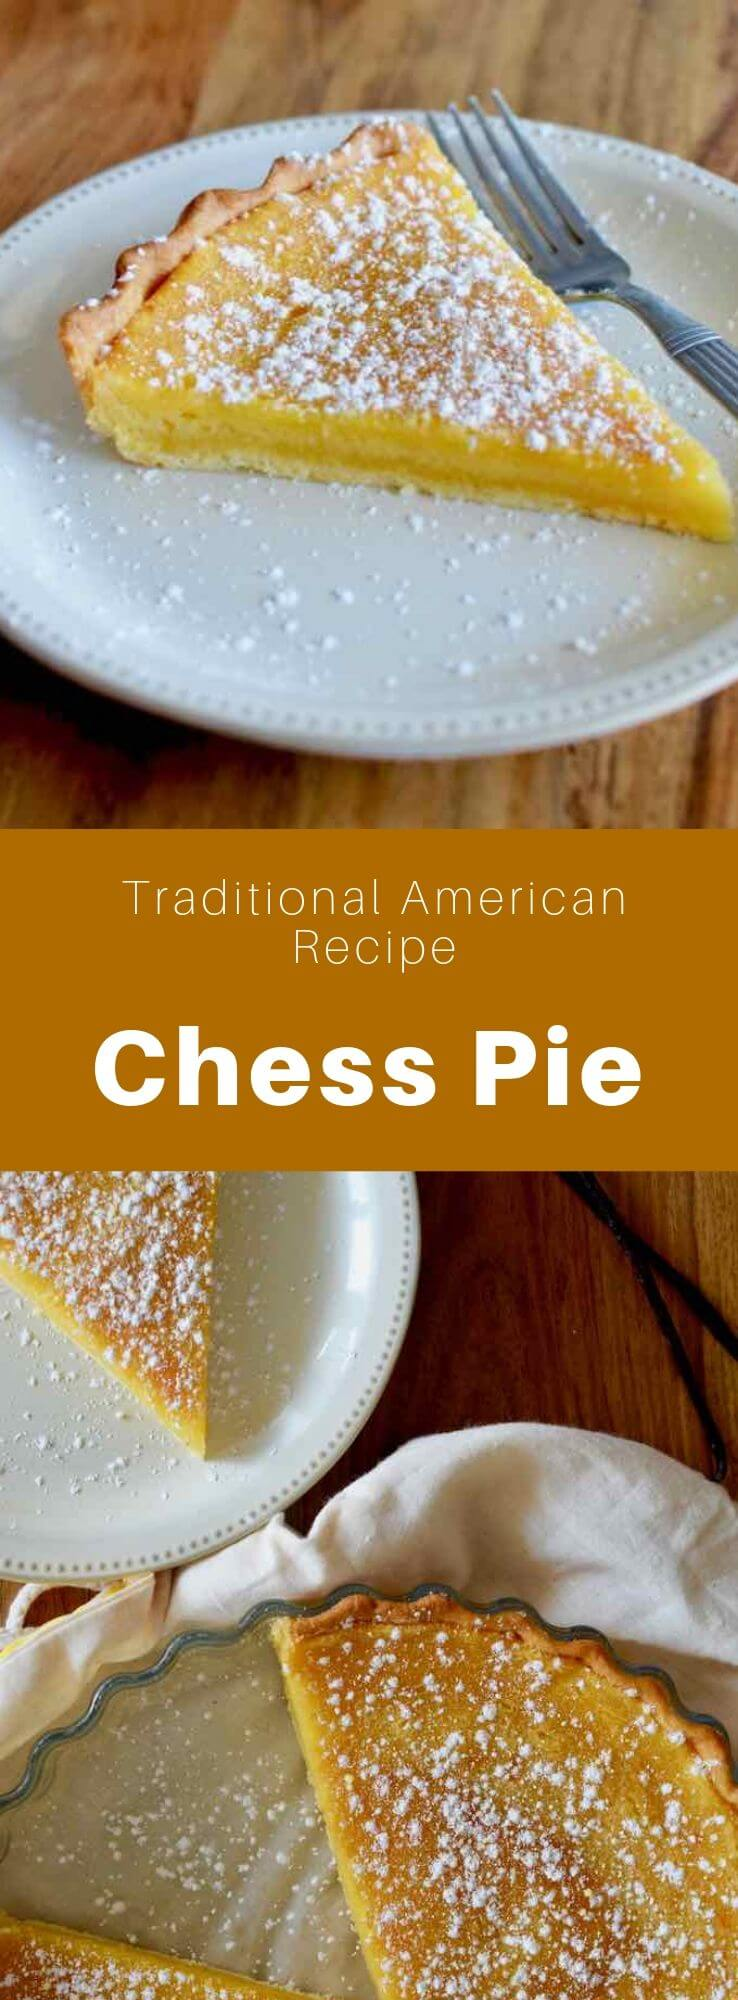 Chess pie is one of the most traditional Southern pies in the United States. It consists mainly in a baked creamy filling, perfumed with vanilla. #SouthernFood #SouthernRecipe #SouthernCuisine #AmericanRecipe #AmericanFood #AmericanCuisine #WorldCuisine #196flavors